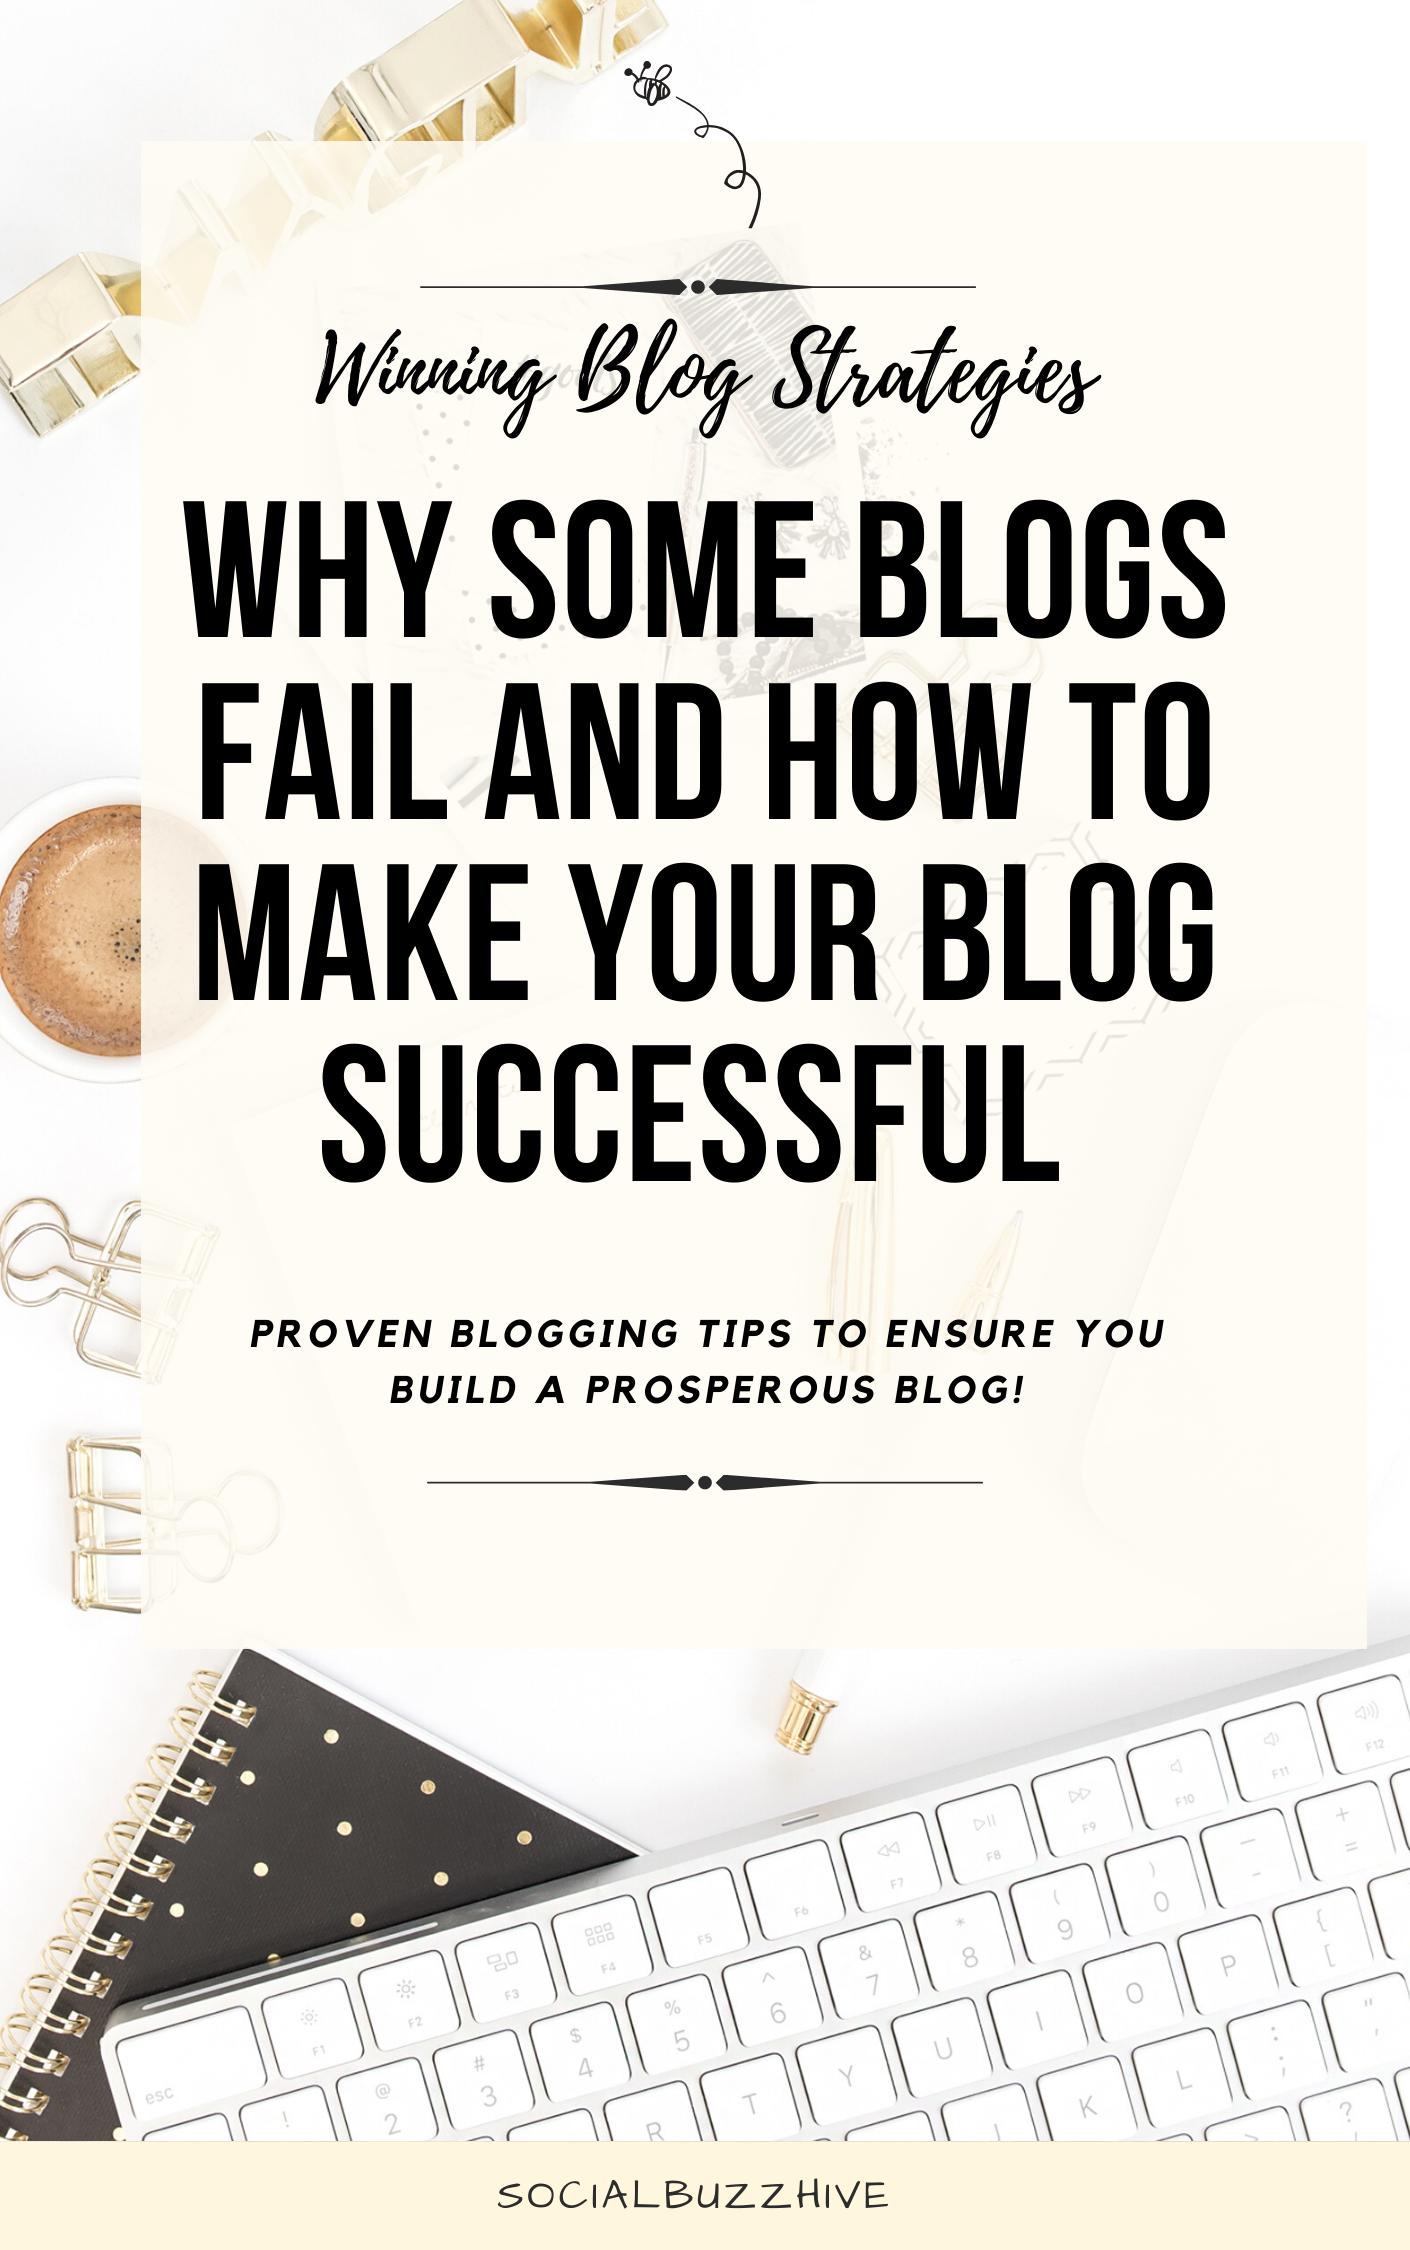 why some blogs fail and how to make your blog successful